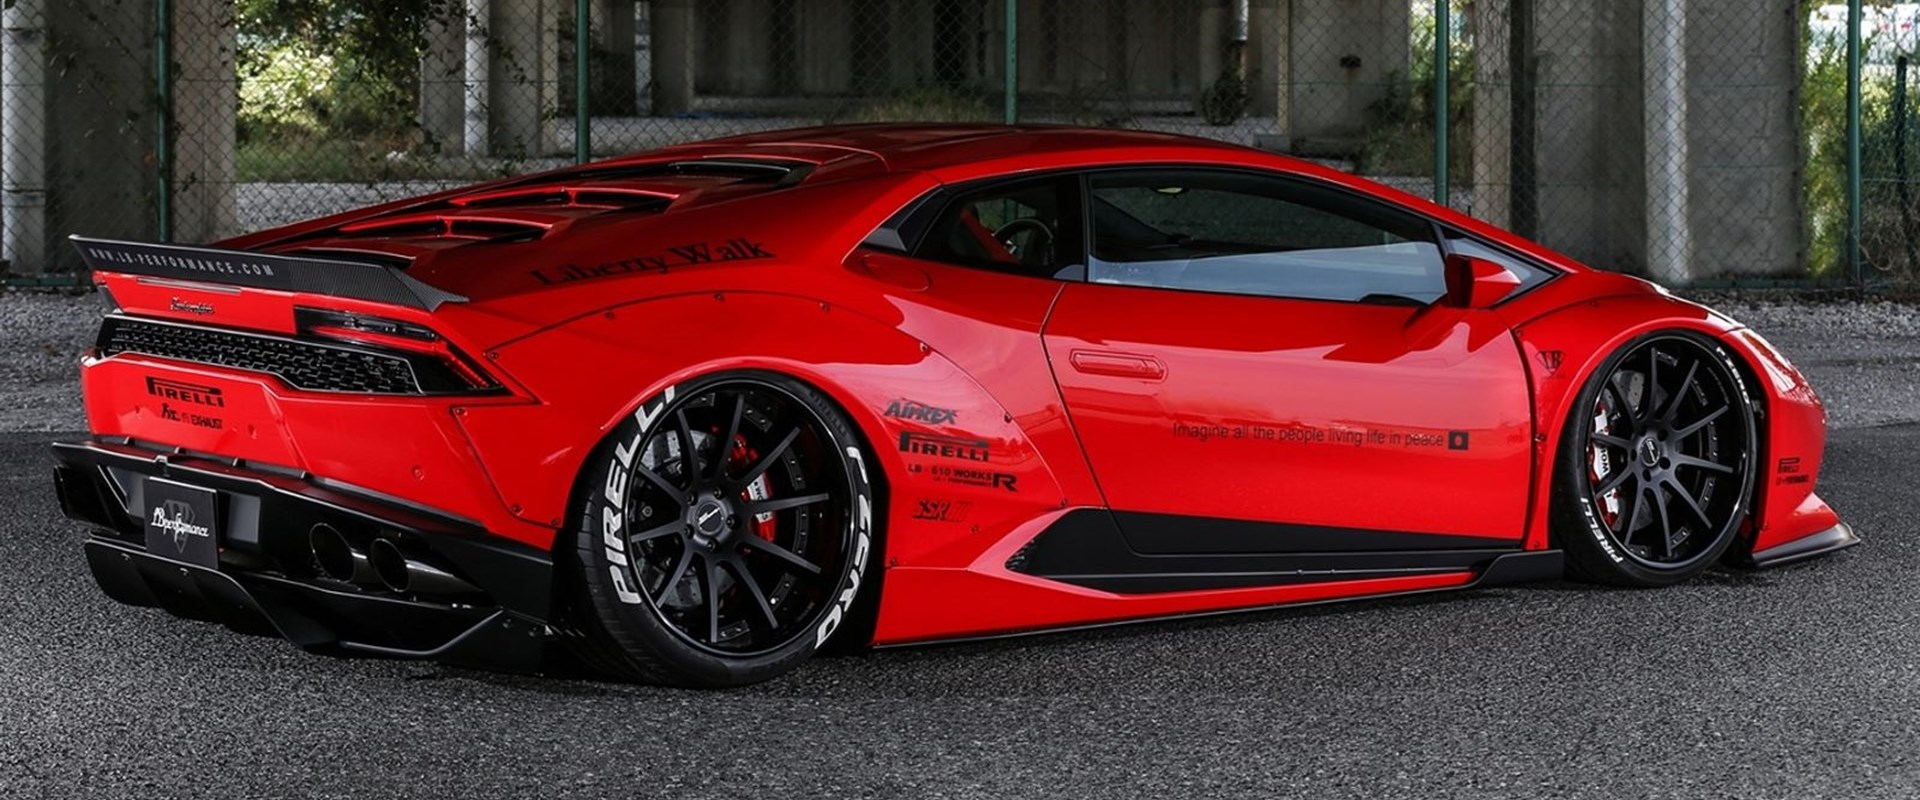 10 Liberty Walk Creations You Re Going To Love Or Hate